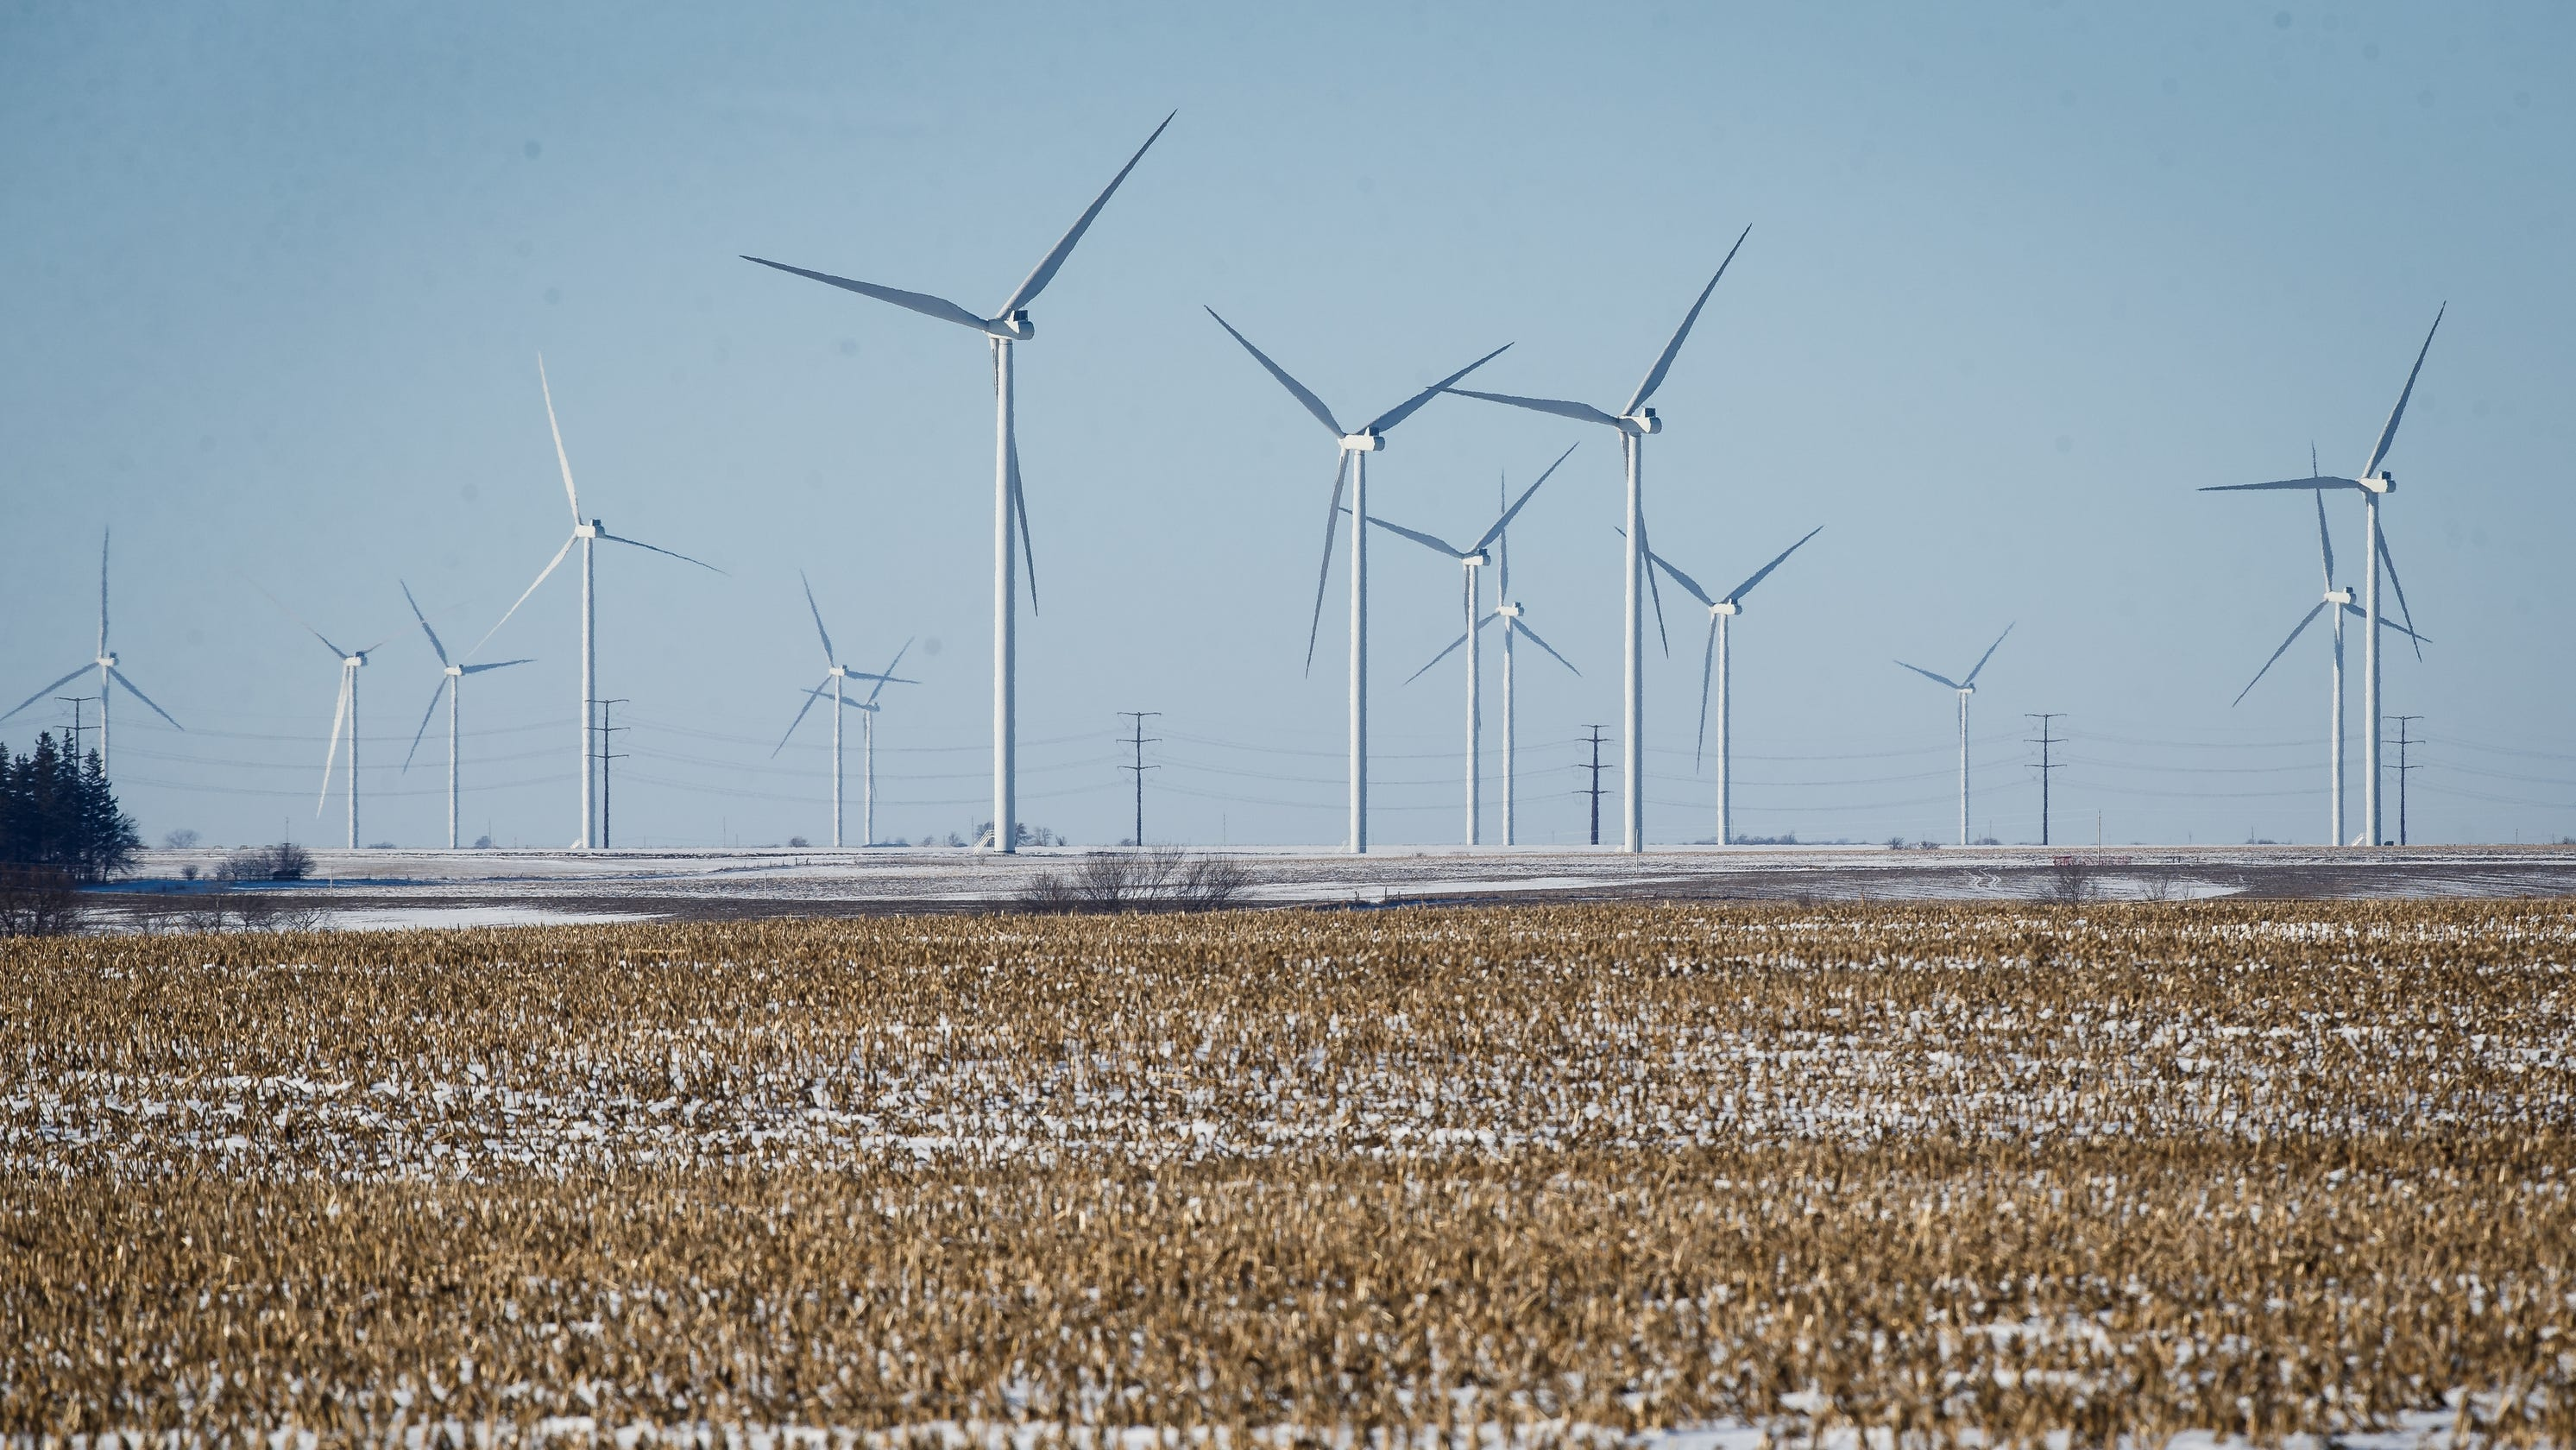 Paris climate agreement return opens up innovation and business opportunities here in the Midwest